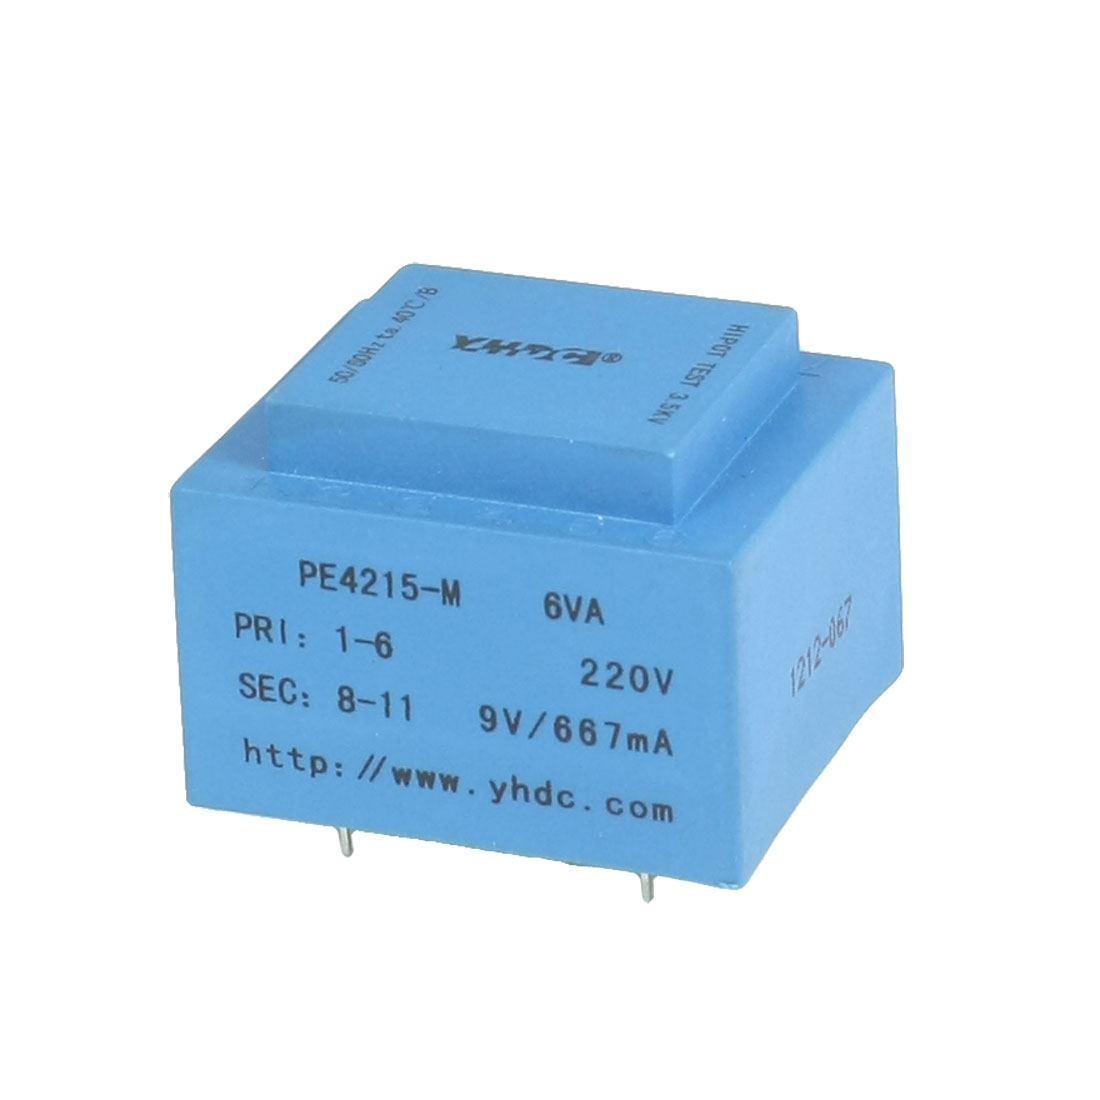 PE4215-M 6VA 50/60 Hz 9V Output Plug-in Encapsulated Transformer